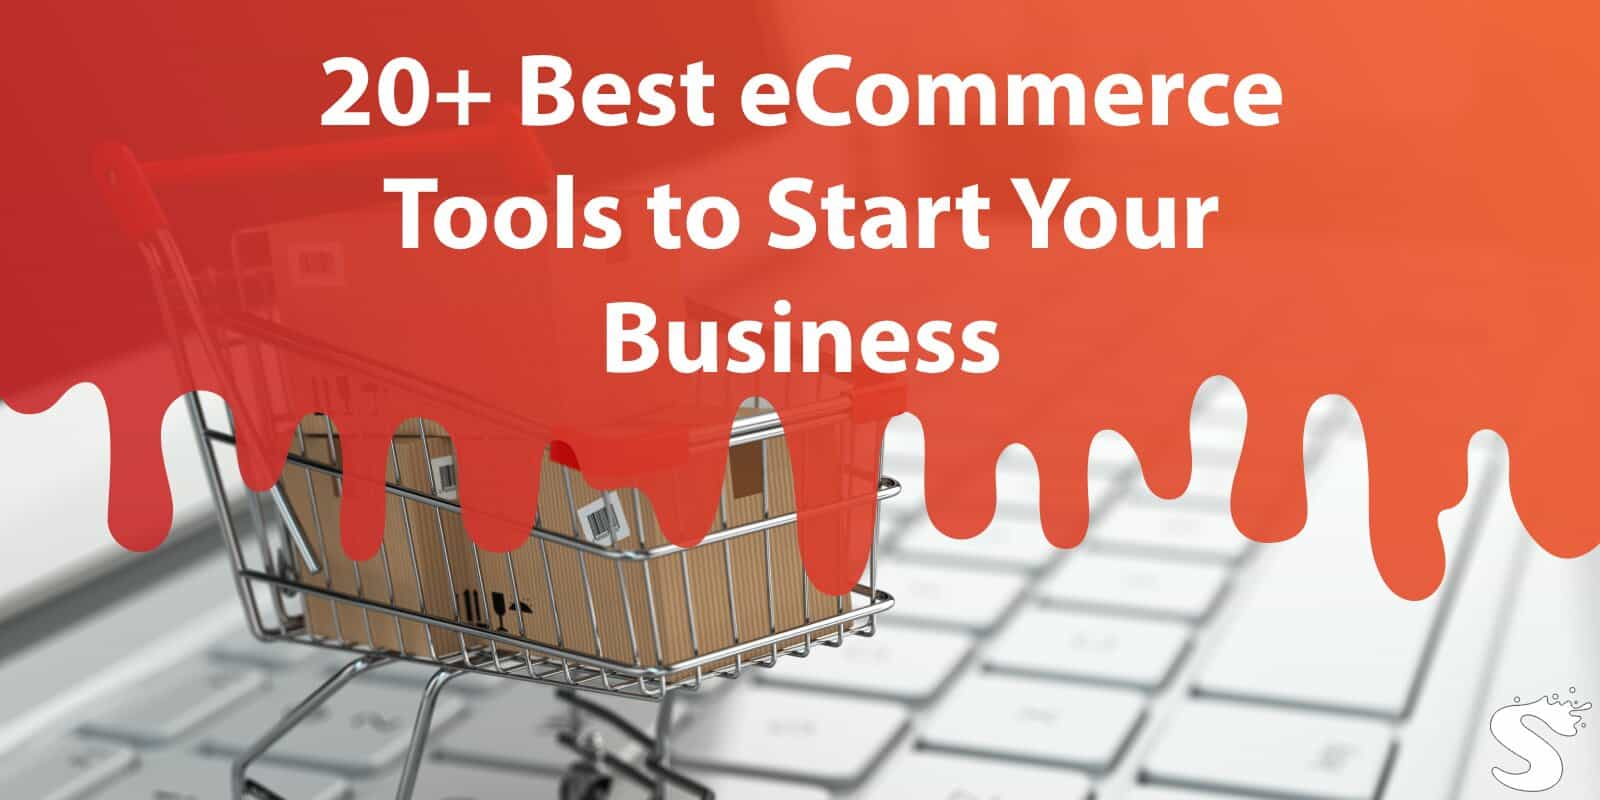 20+ Best Ecommerce Tools to Start Your Business